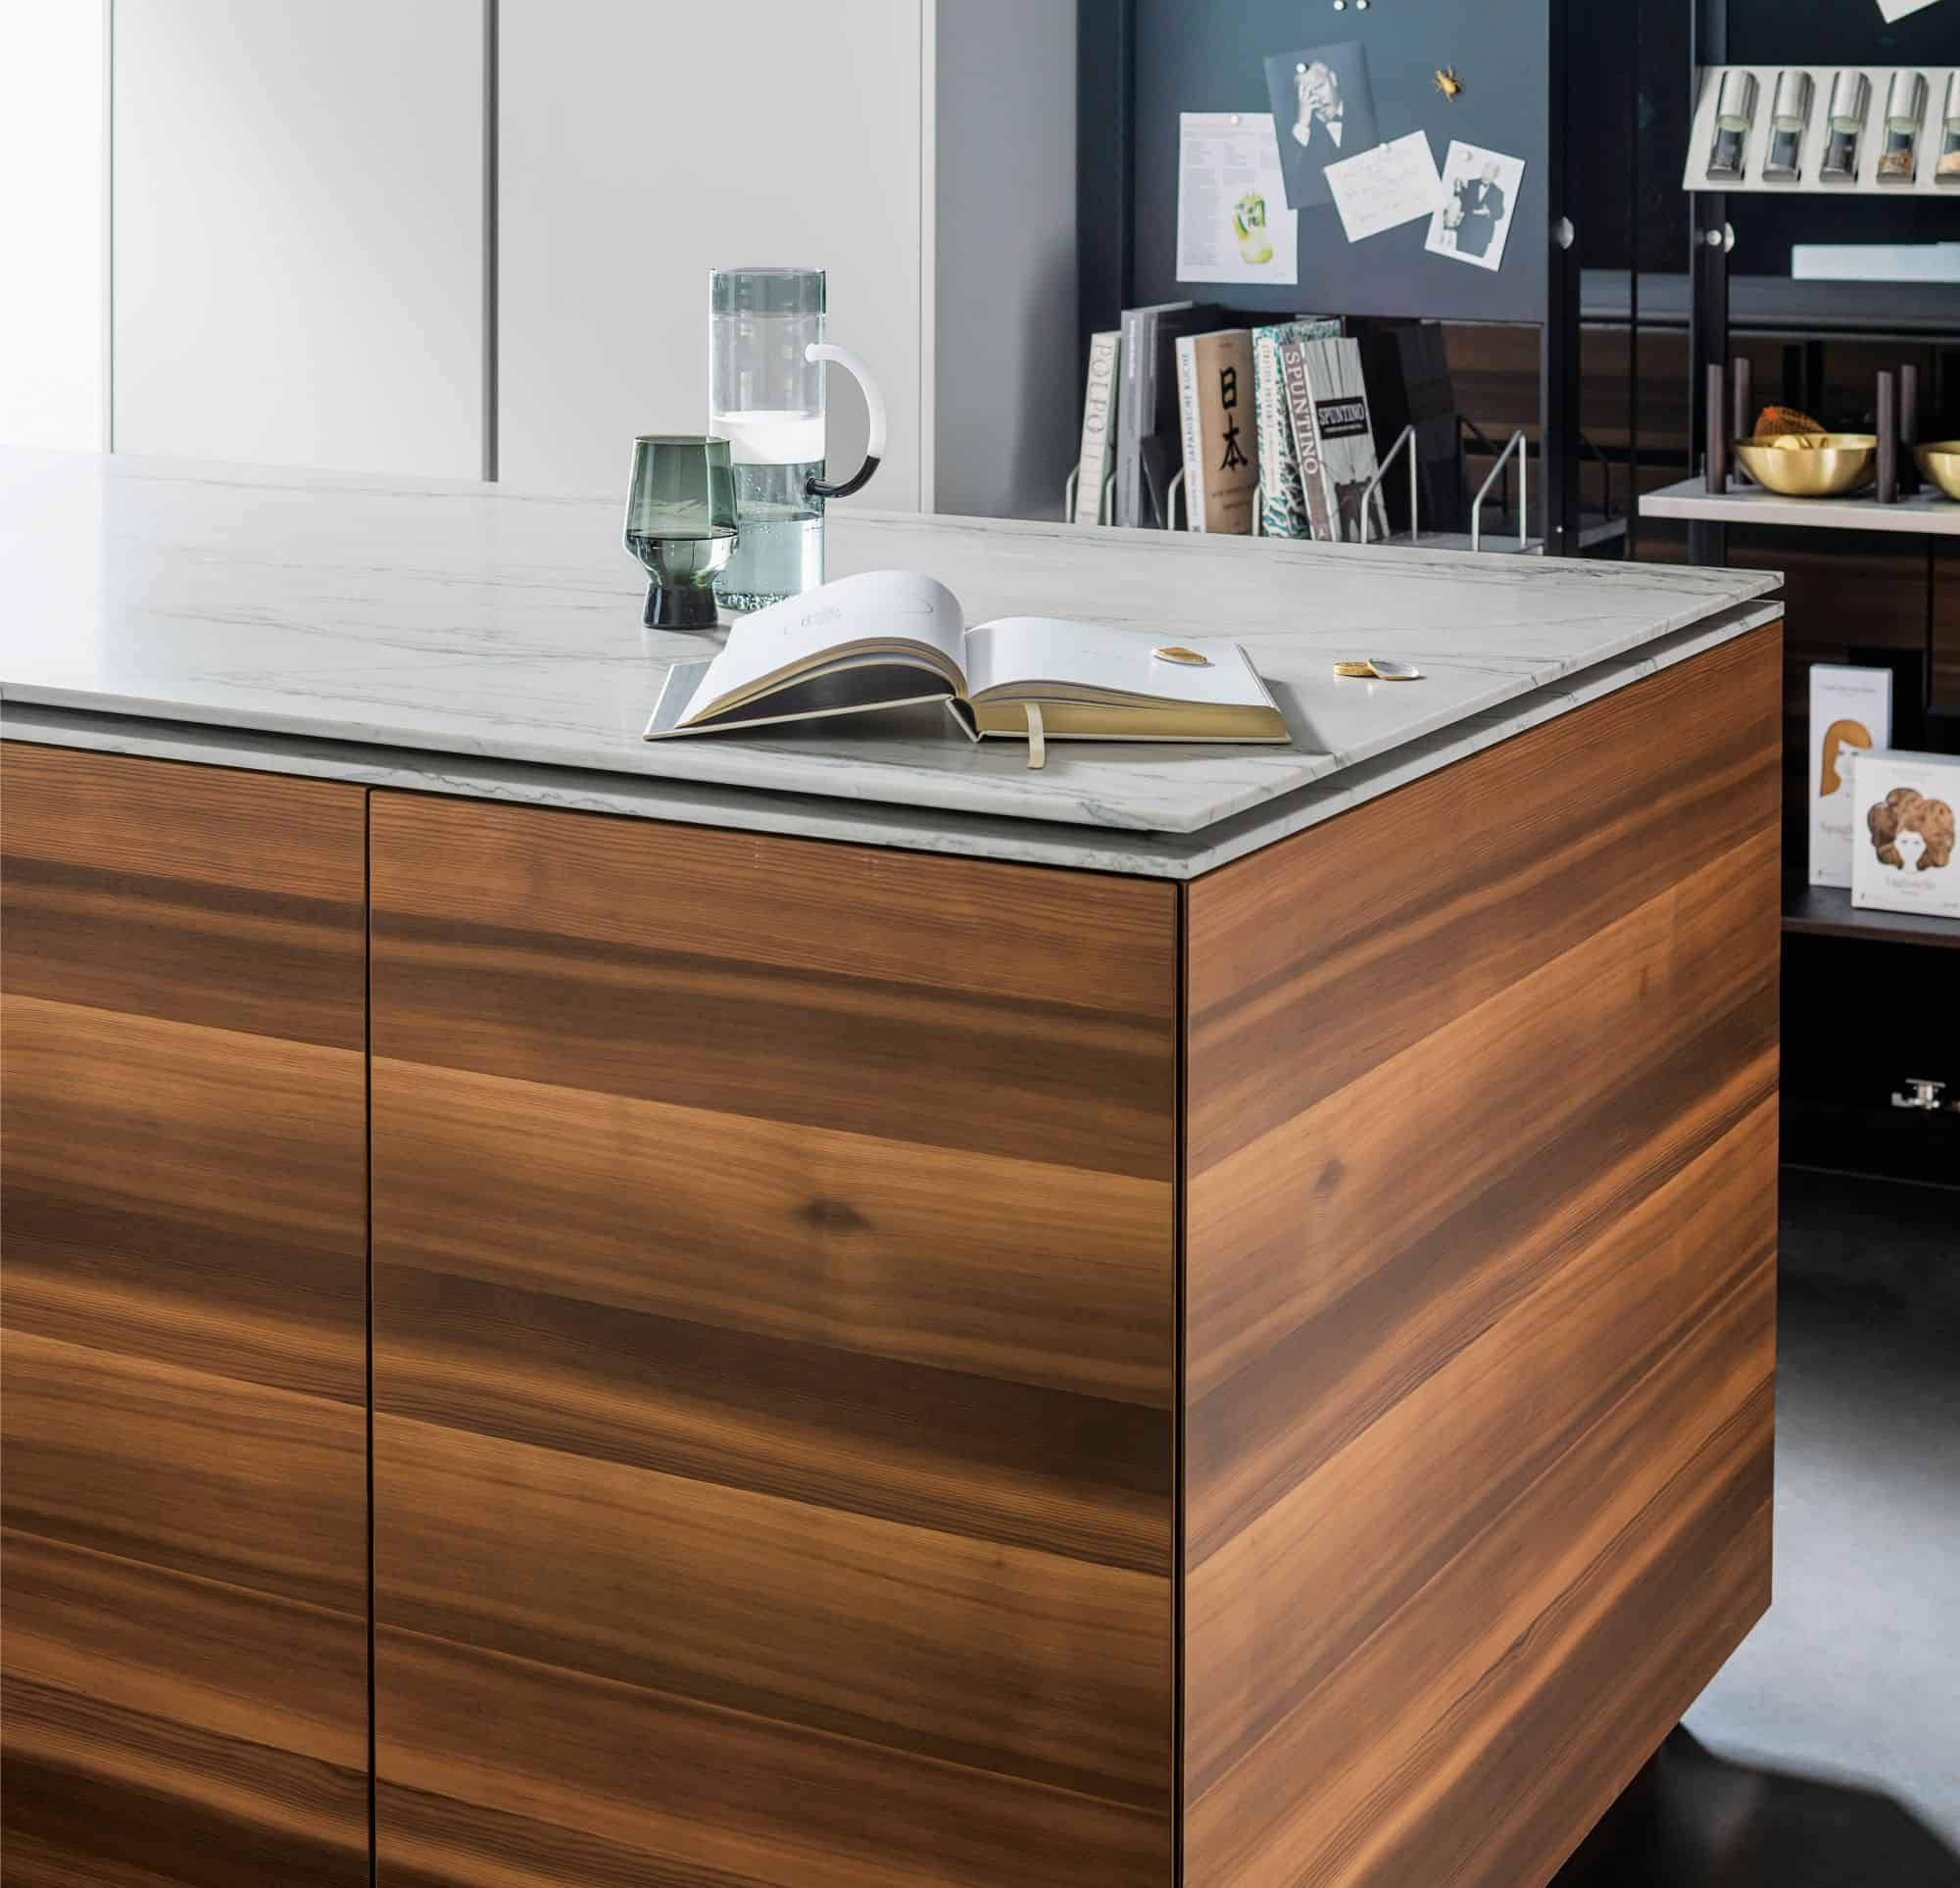 eggersmann MOTION sliding countertop when closed hides an induction cooktop and stows away a breakfast table